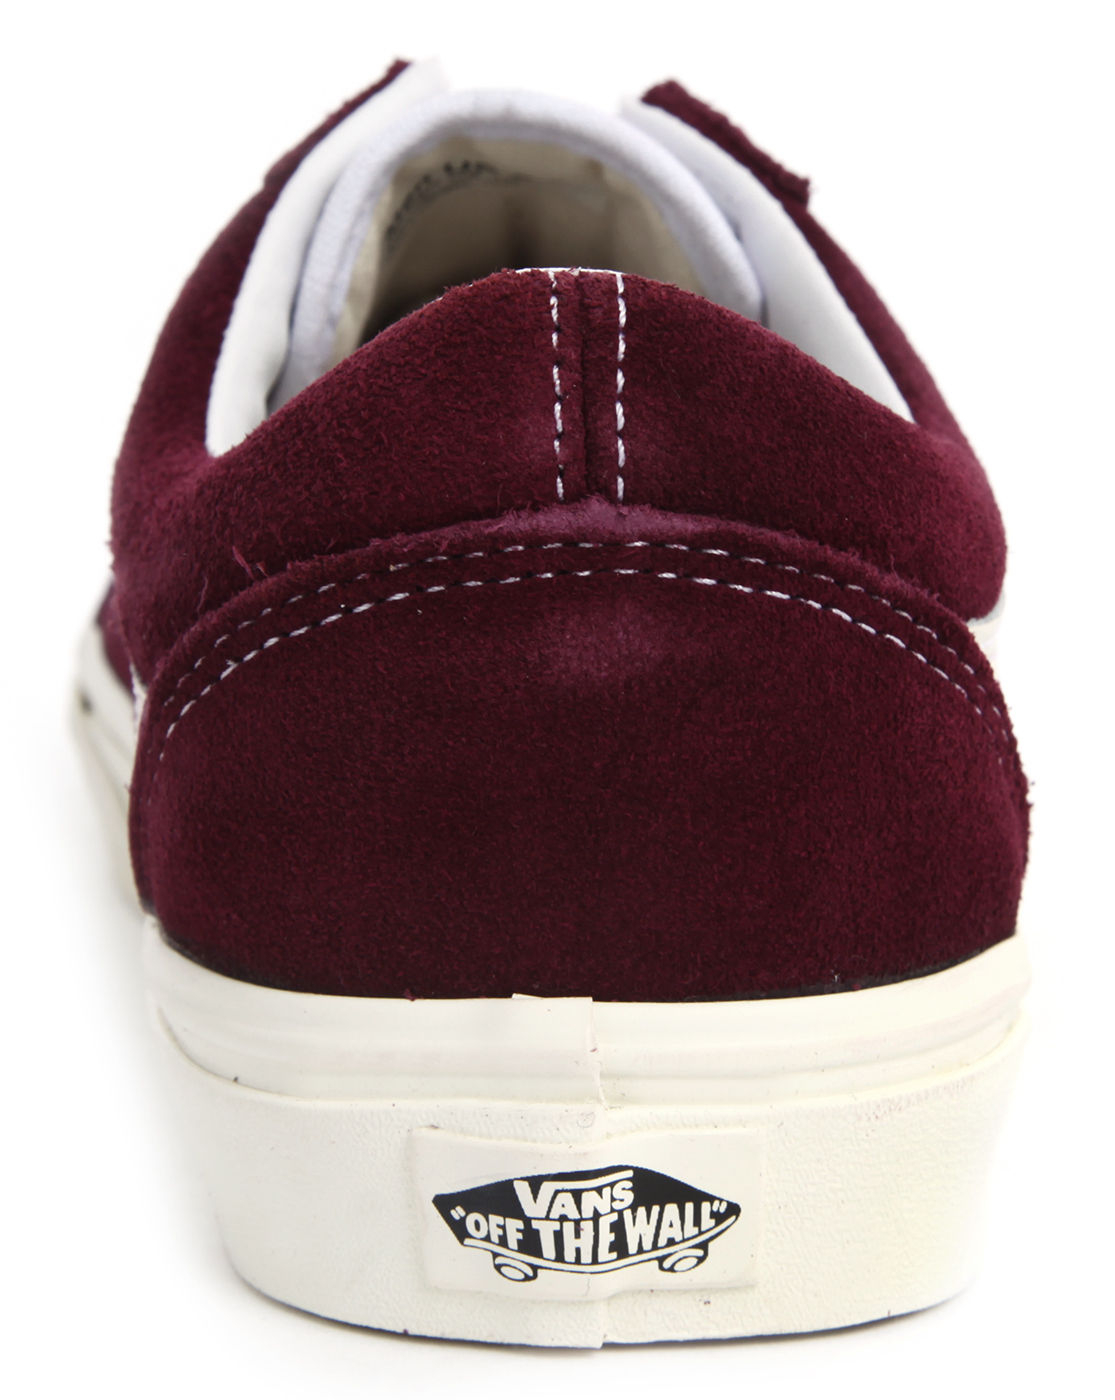 Vans Old Skool Suede Bordeaux